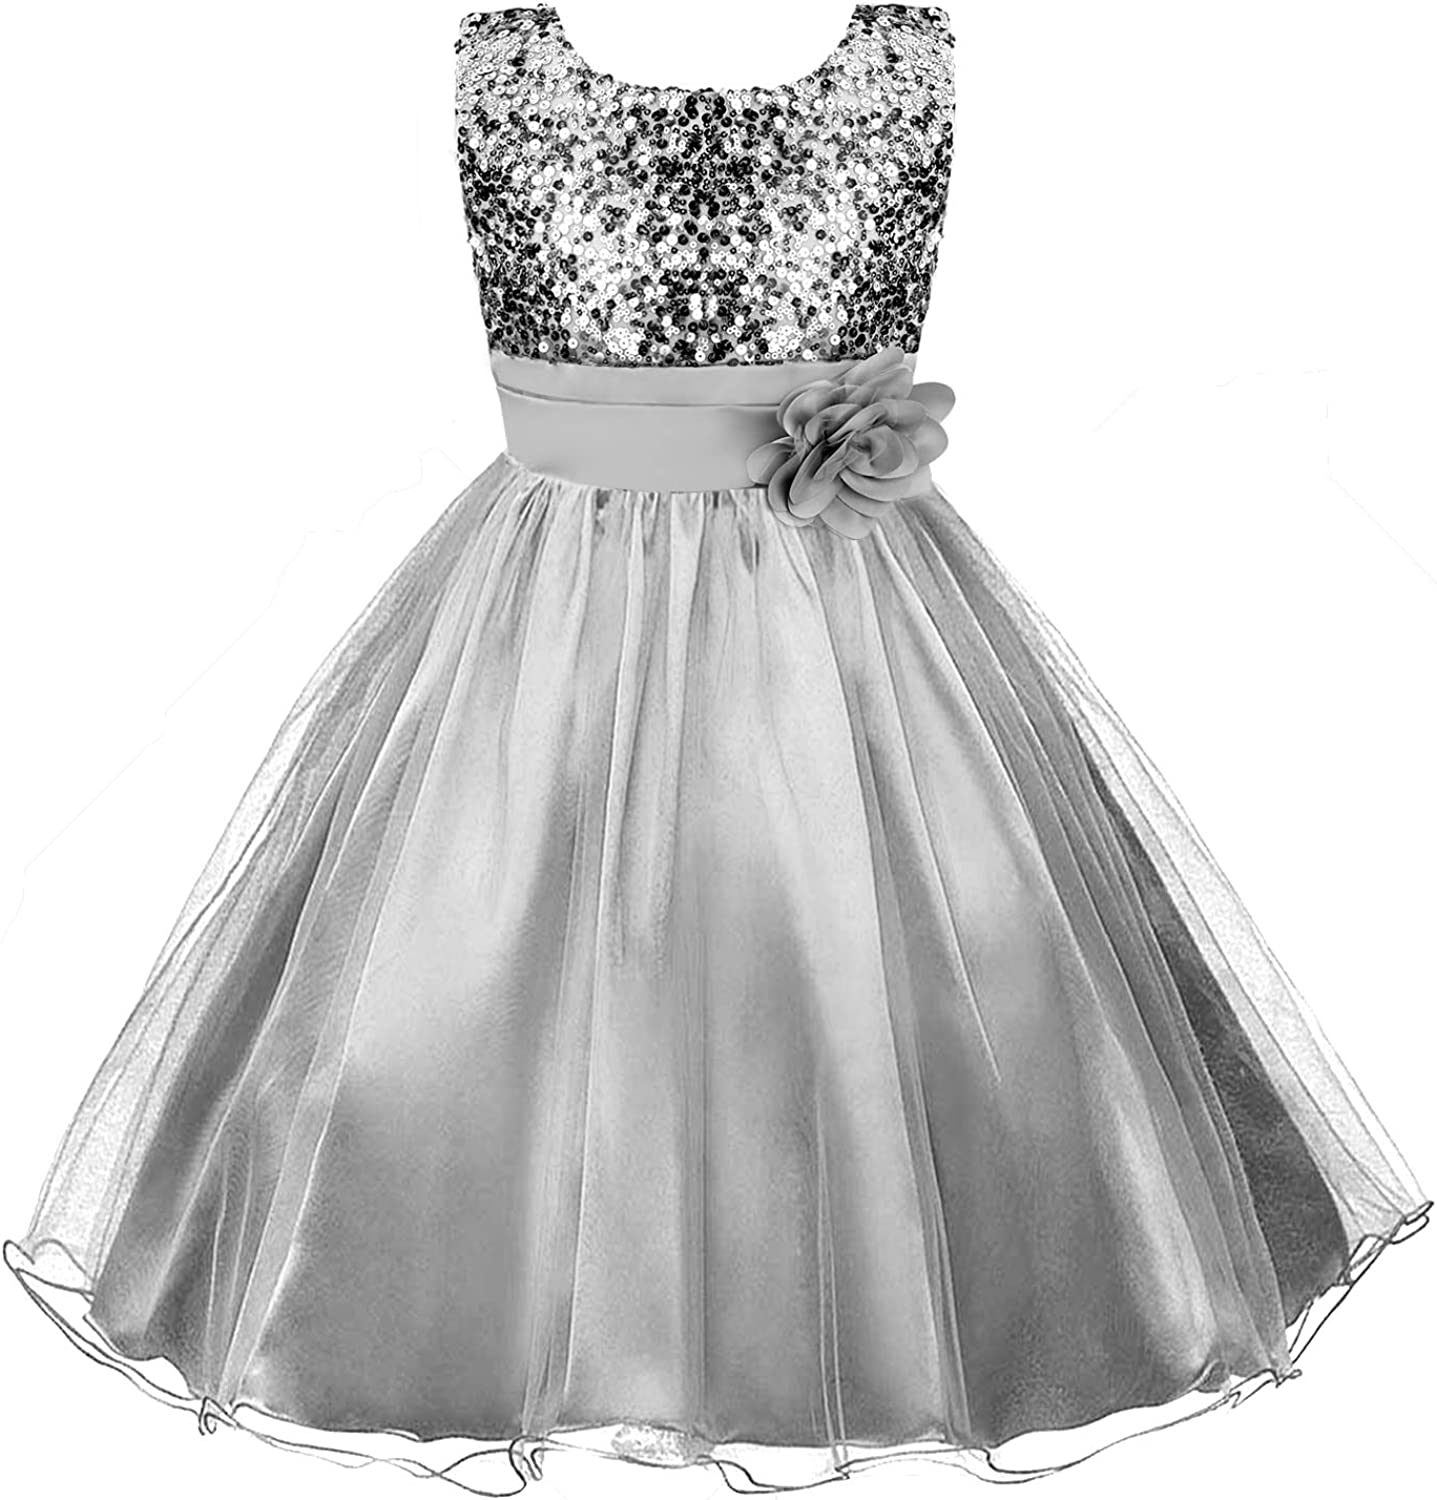 Acecharming Girls Dresses Sequin Flower Girls Party Dress Bridesmaid Ball Gown Wedding Tulle 3-10 Years